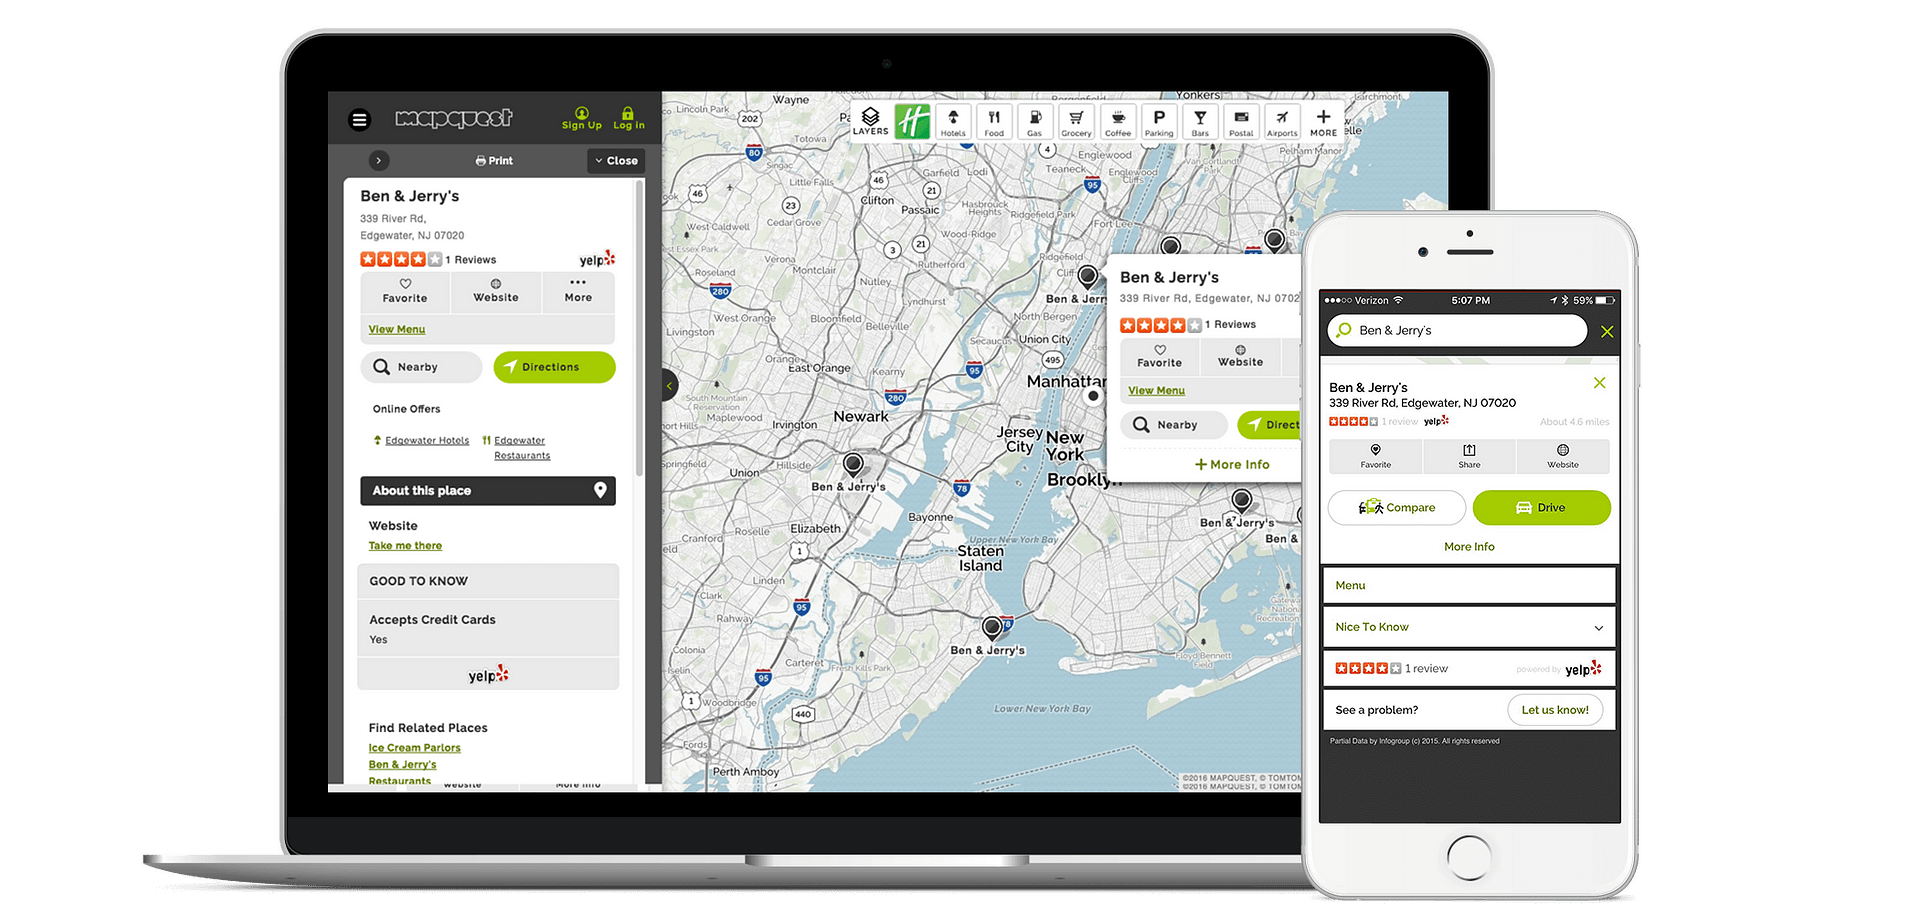 Add Your Business to MapQuest